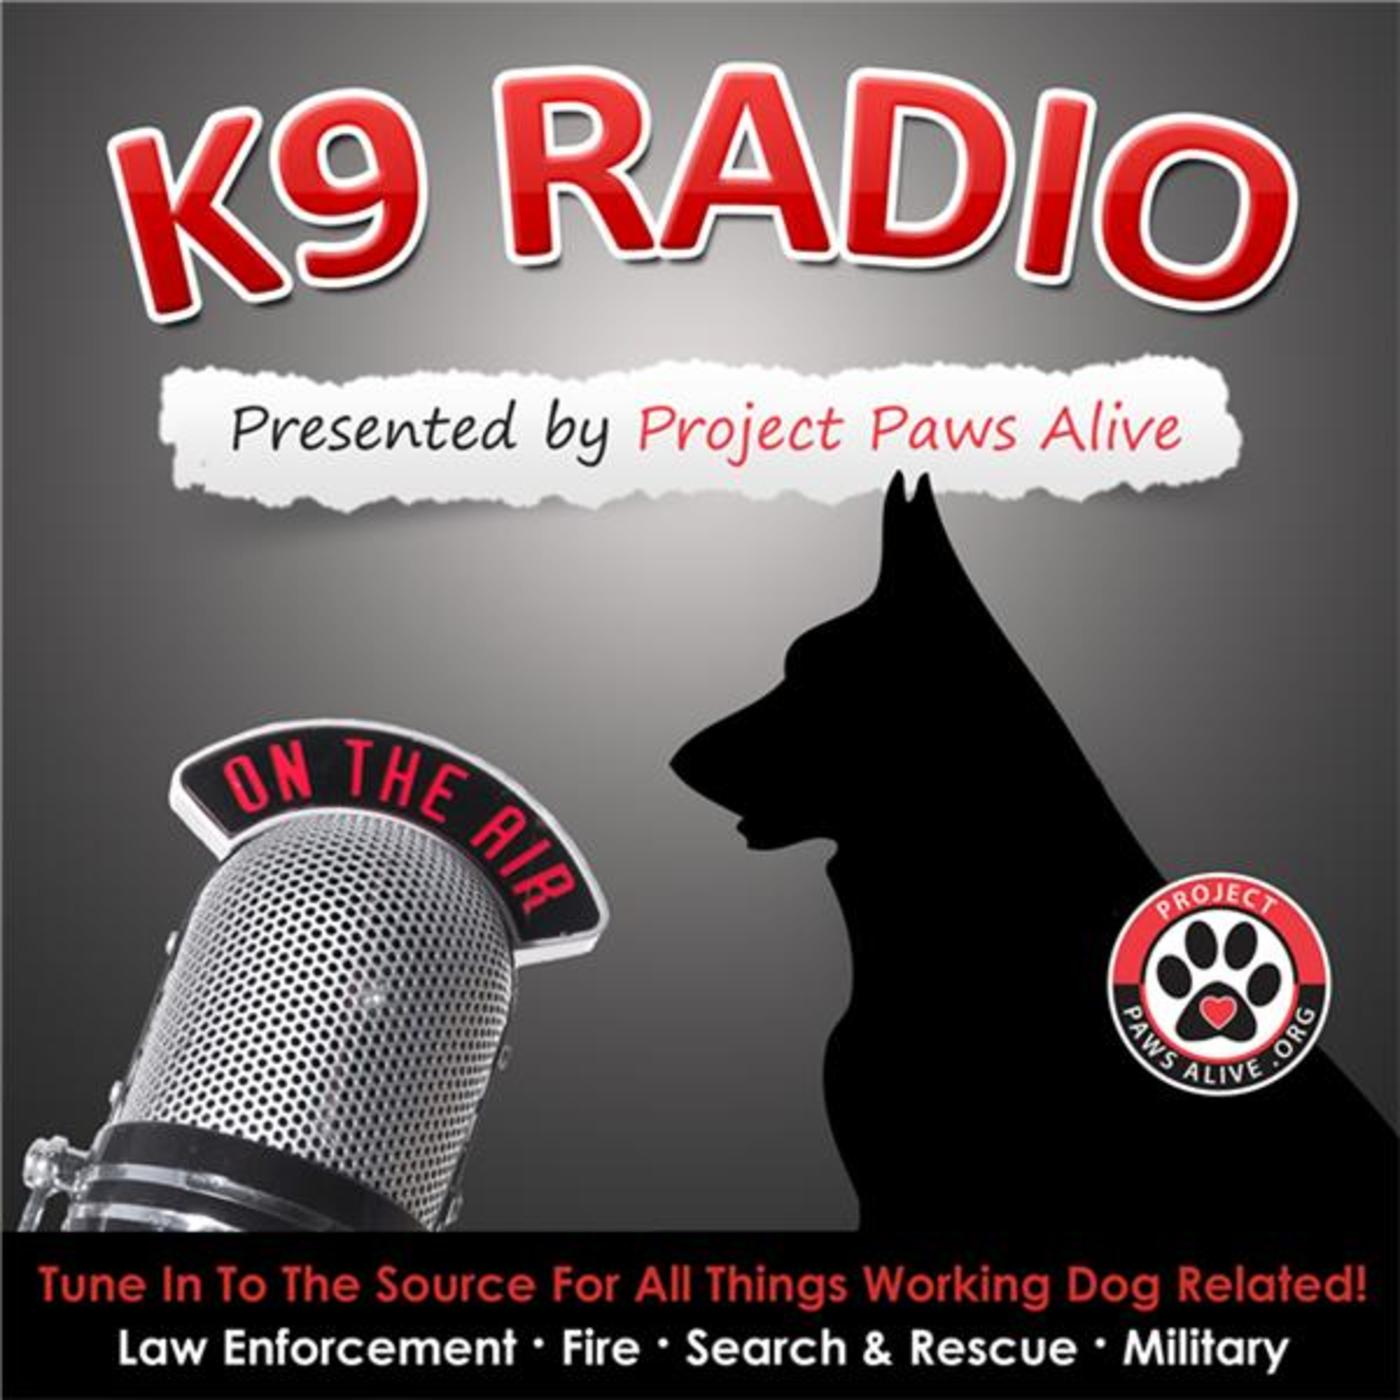 K9 Radio by Project Paws Alive